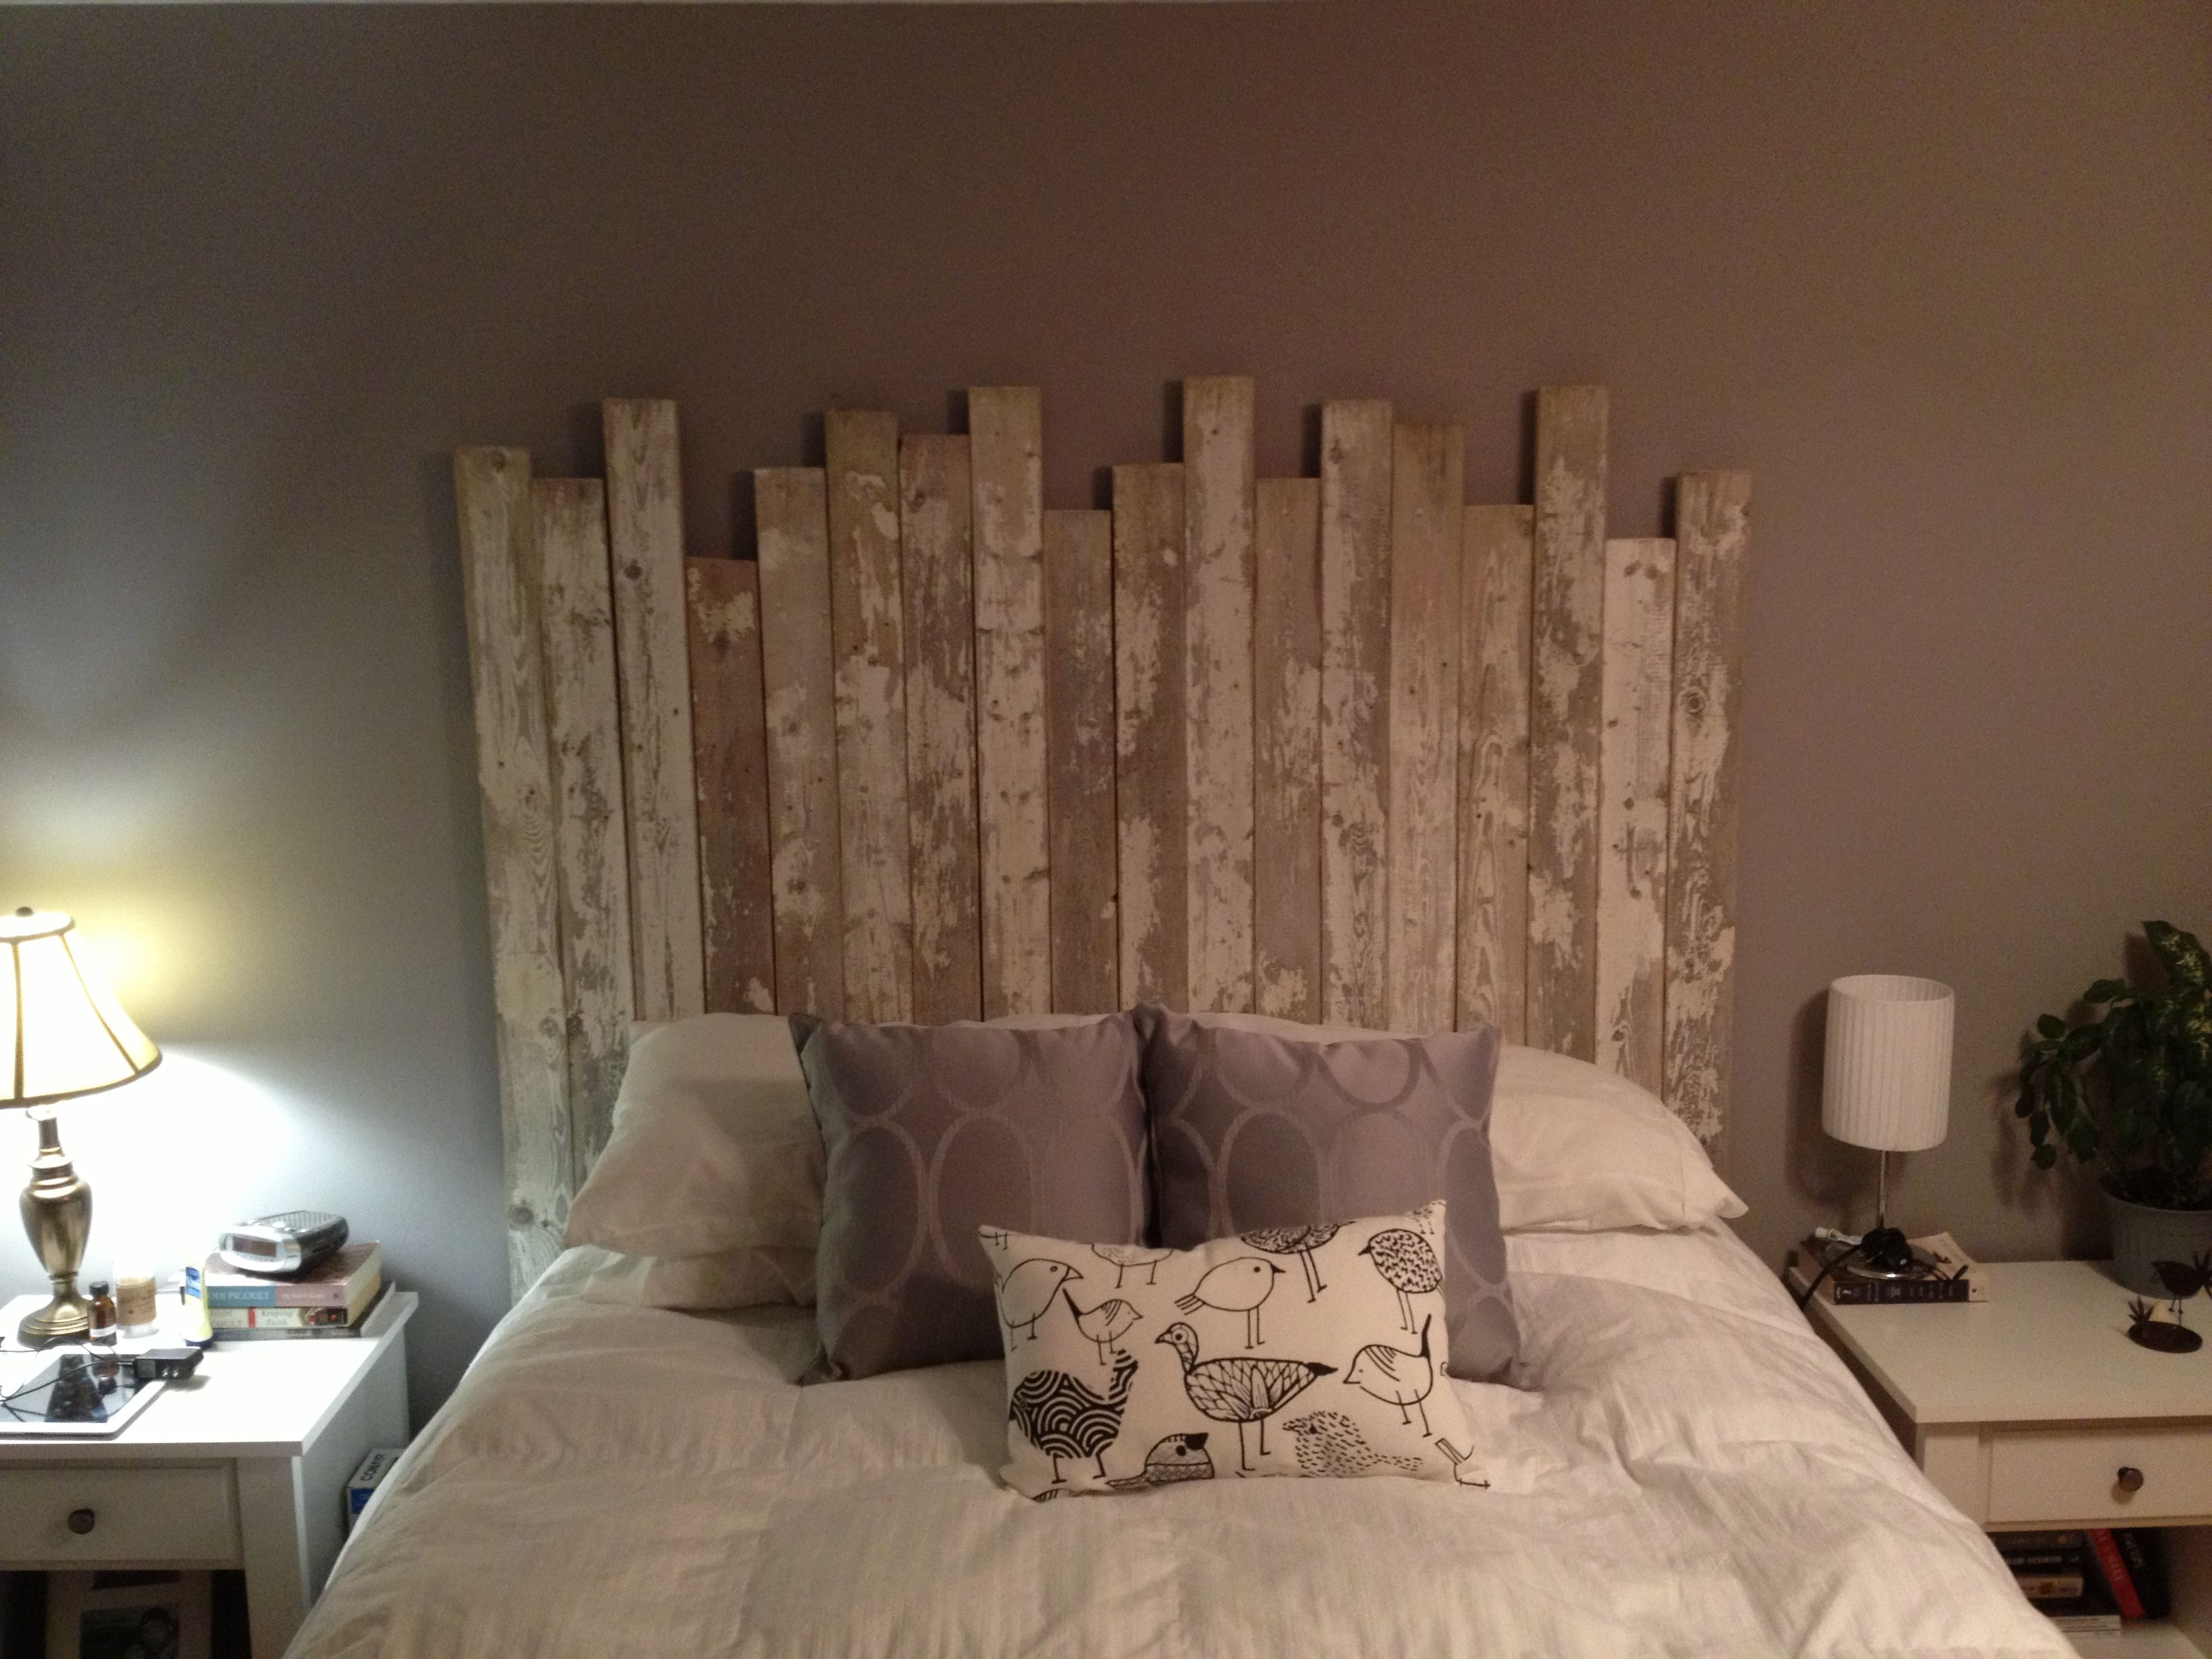 Ideas For Homemade Headboards 28 best headboards images on pinterest | homemade headboards